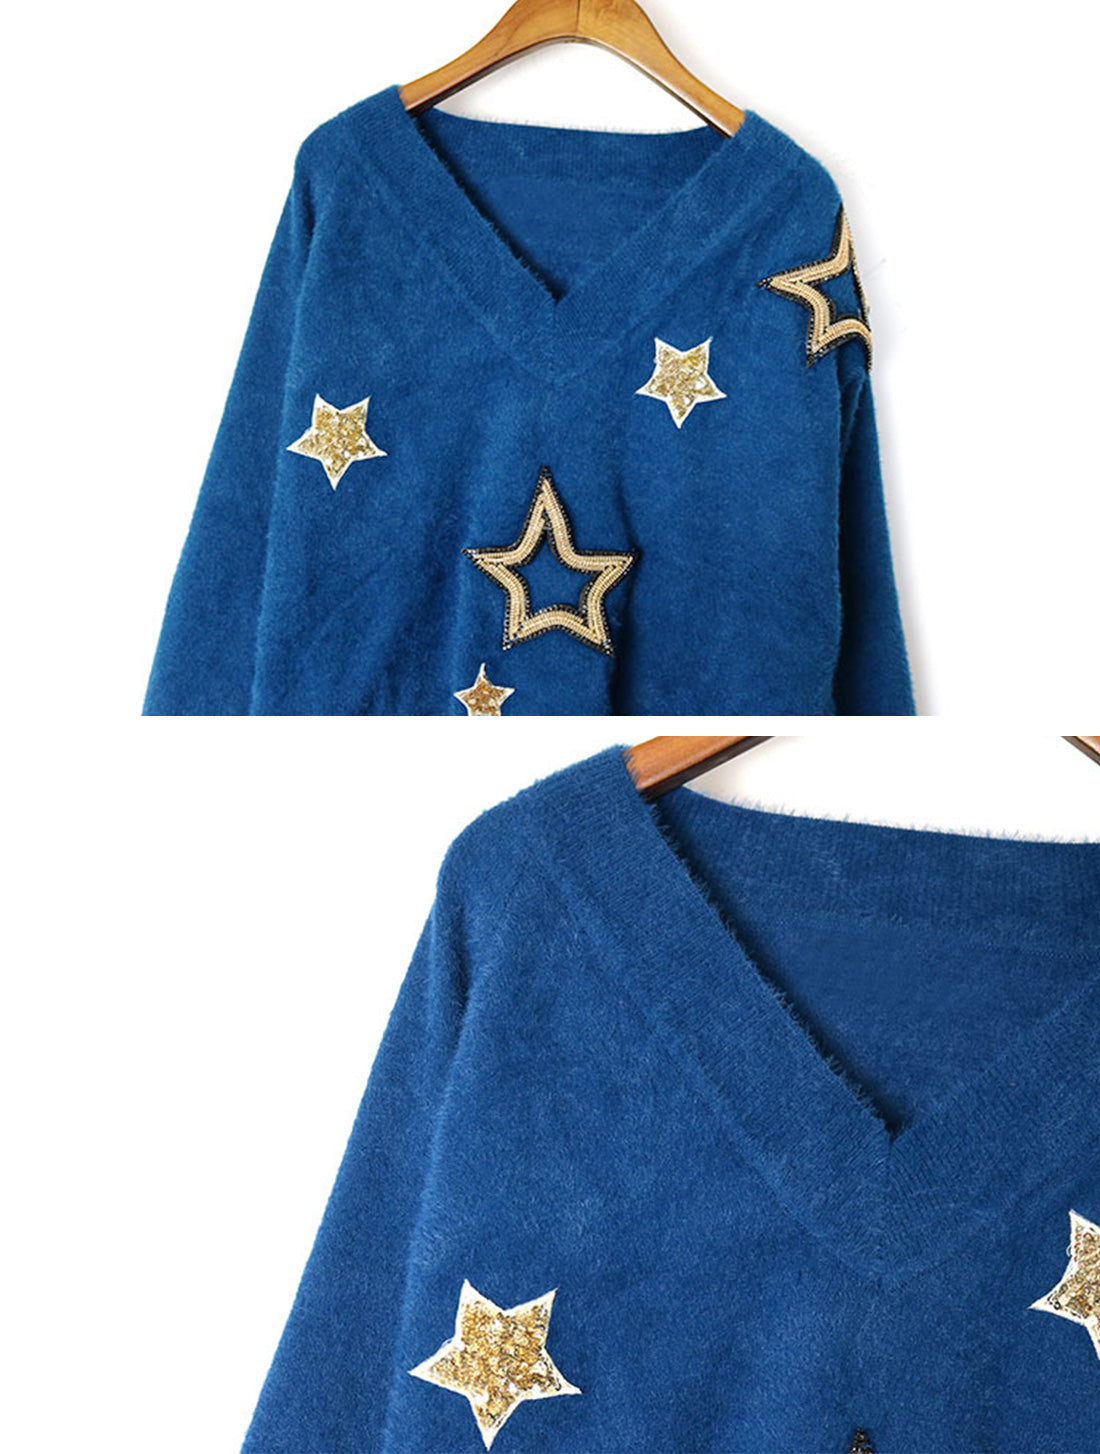 Obviously Edgy Star Embroidered Sweater Top Details 1